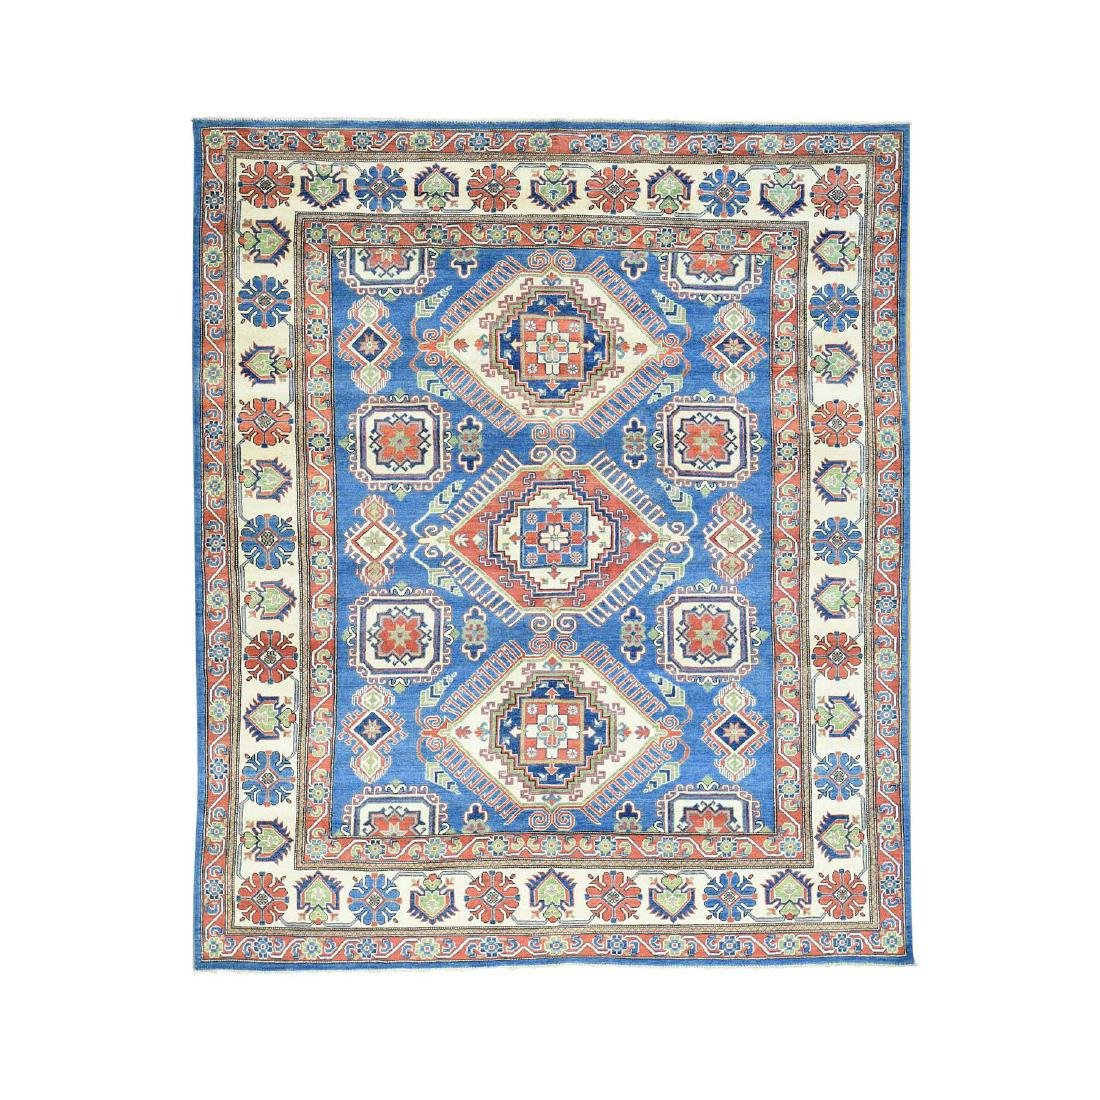 Hand-Knotted Tribal Design Kazak Pure Wool Rug 8.5x10